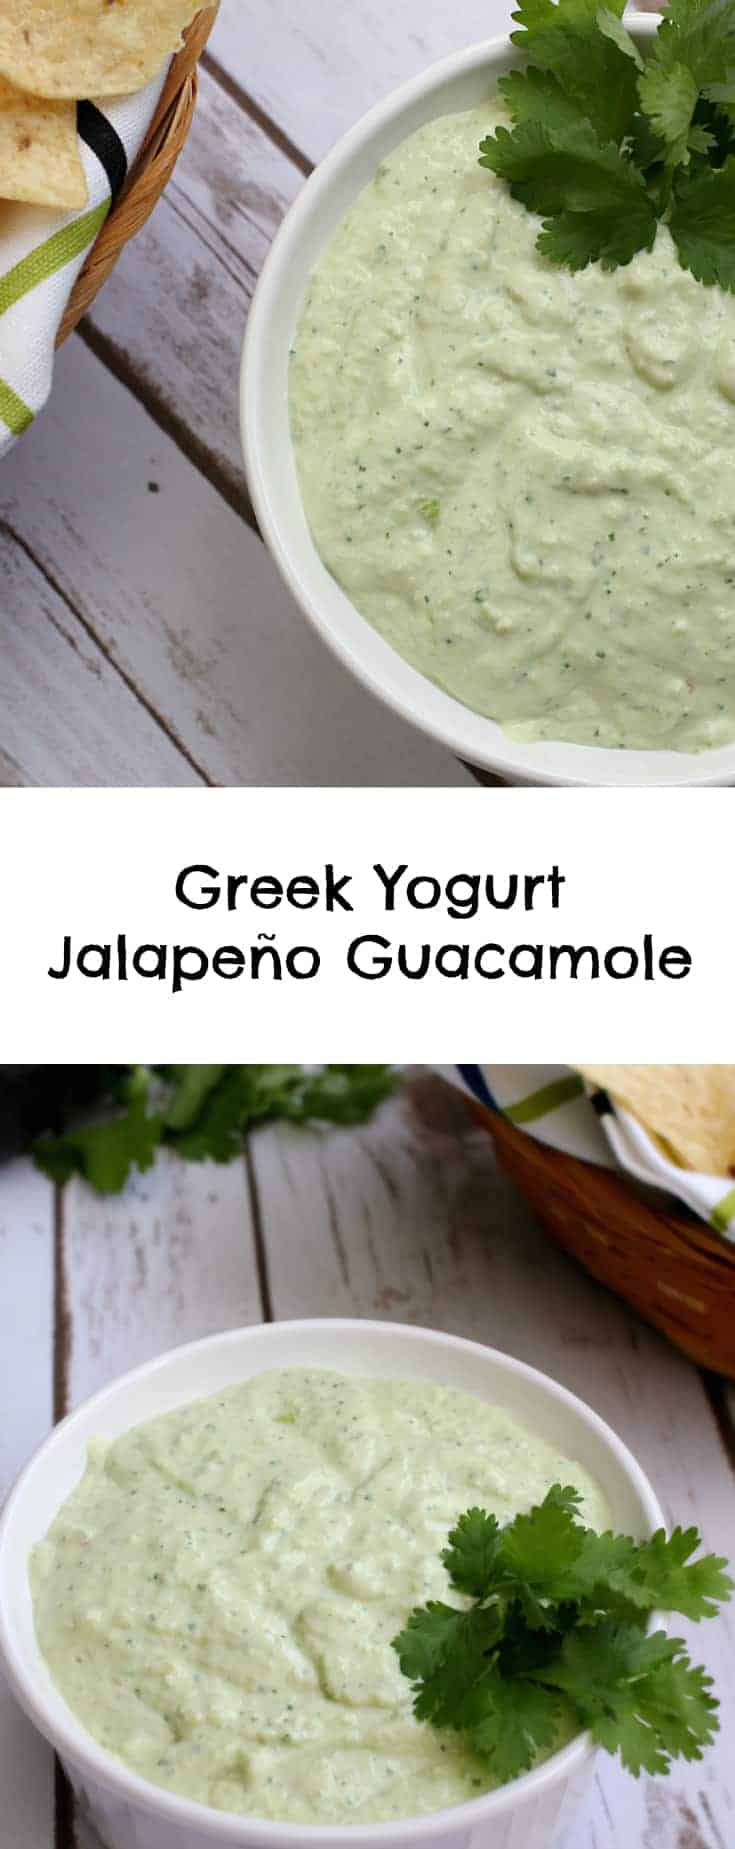 Greek Yogurt Jalapeño Guacamole dip recipe